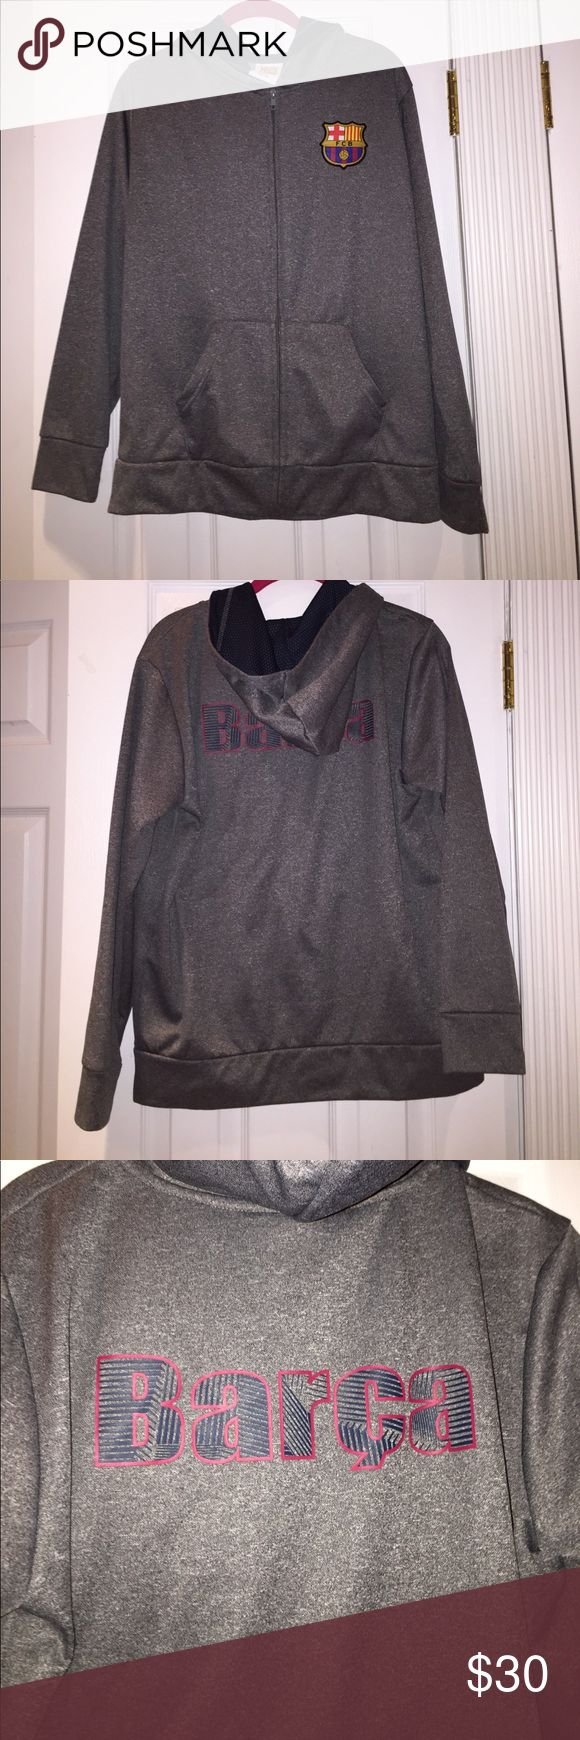 FC Barcelona zip up jacket Great condition worn extremely minimally unisex FC Barcelona jacket. Is a boys XL. But as you can see fits me easily so I would say around size M in woman's. Any questions let me know Jackets & Coats